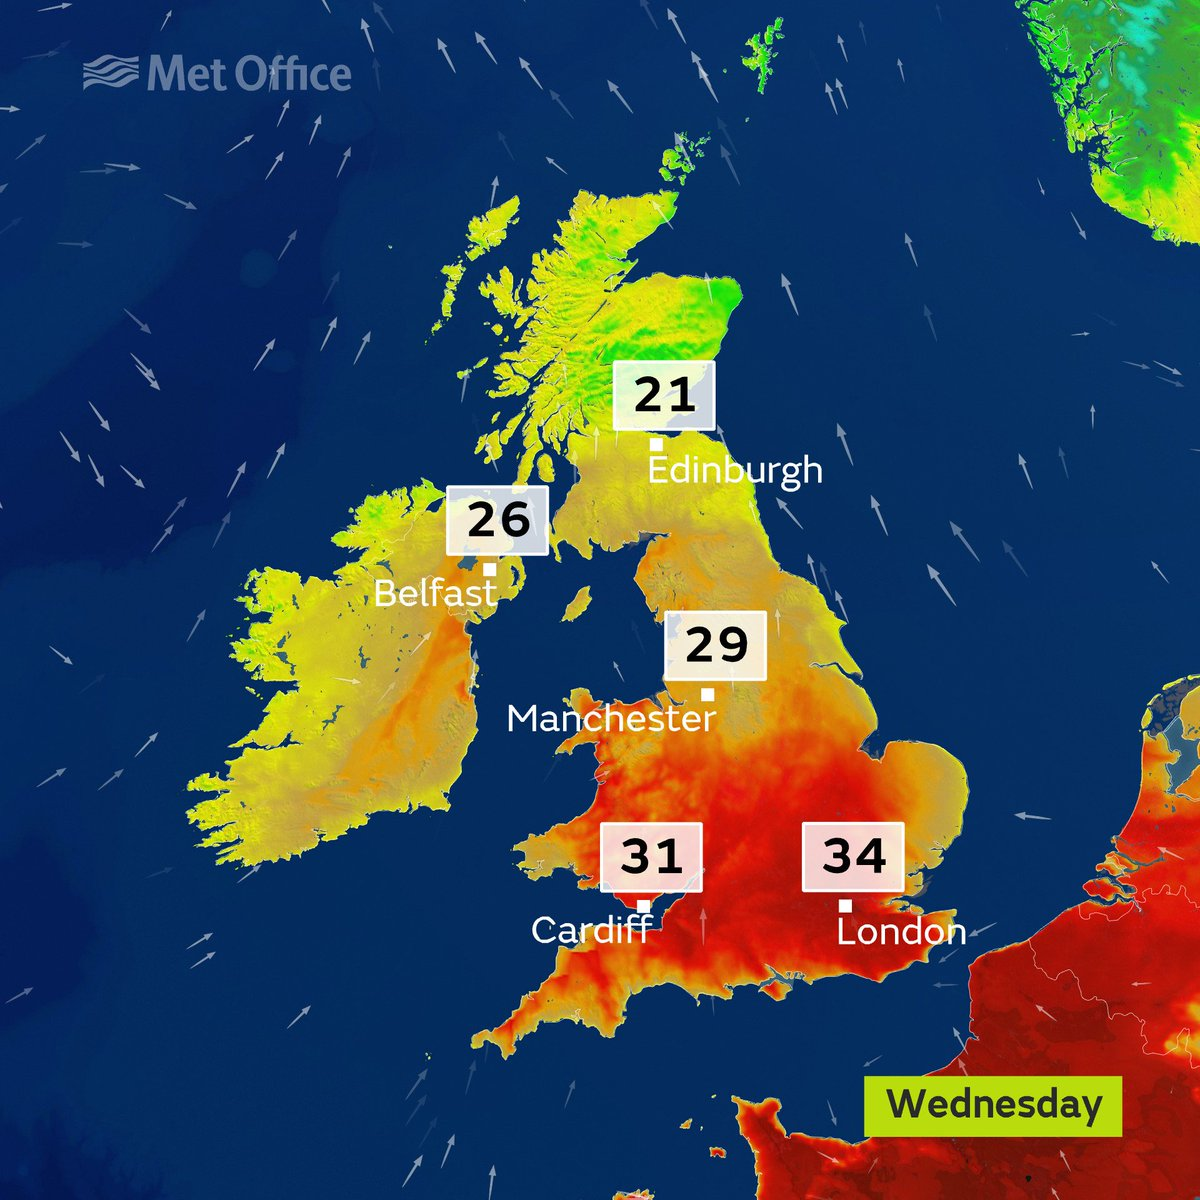 ☀️☀️Tomorrow will see the peak of the #heatwave, with highs reaching 34 °C, potentially making it the hottest June day since 1976! ☀️☀️